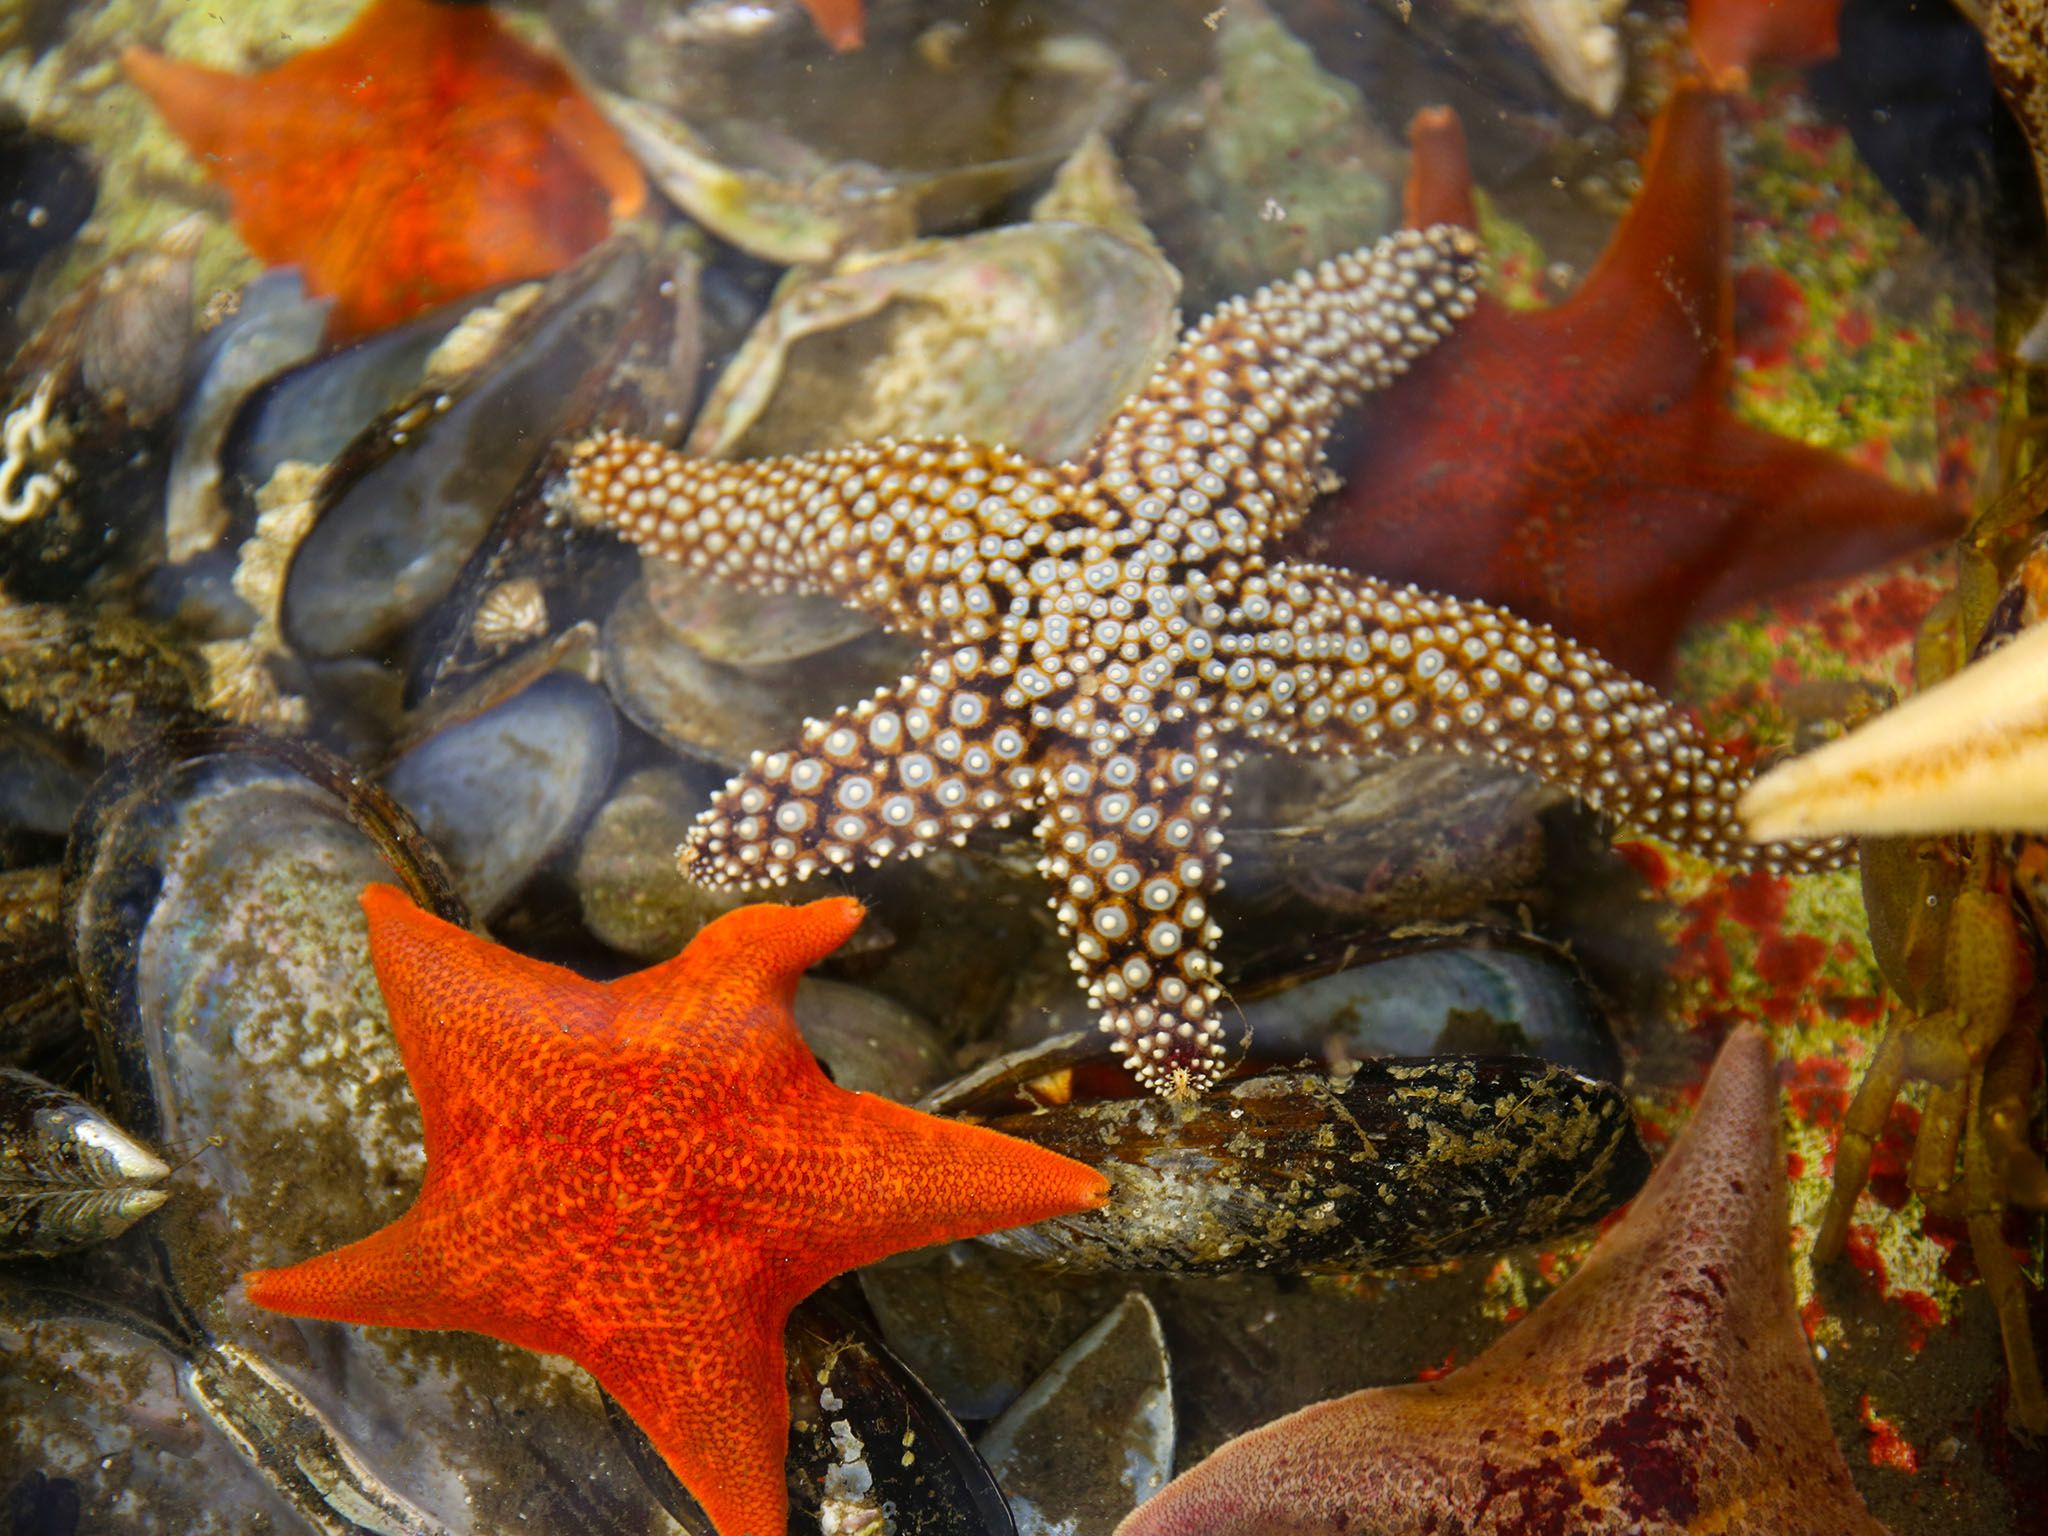 Santa Barbara, Calif.: Some star fish in a tide pool at UC Santa Barbara. This image is from... [Photo of the day - فبراير 2016]